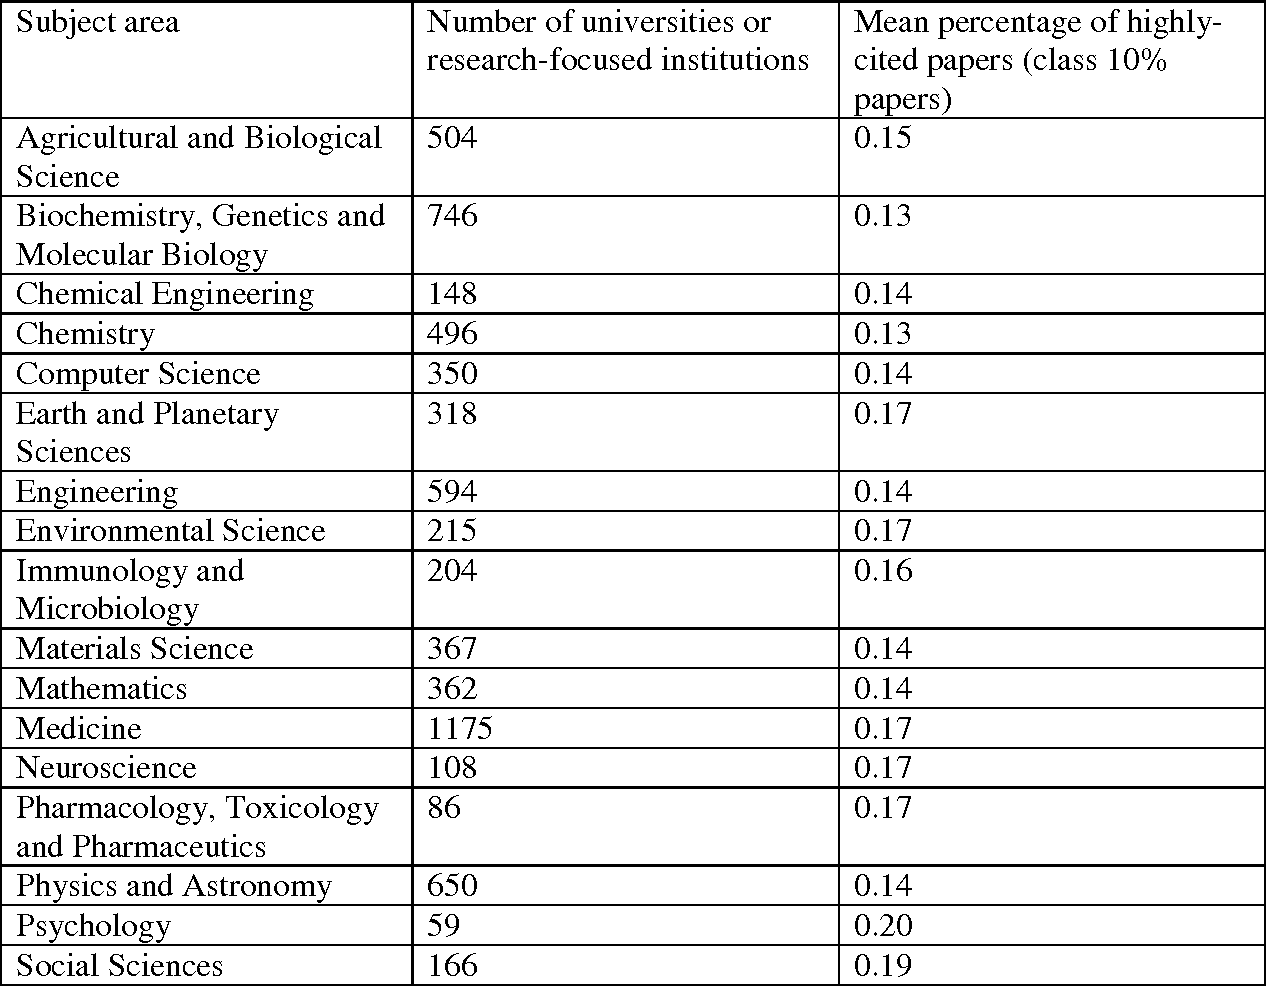 PDF] Ranking and mapping of universities and research